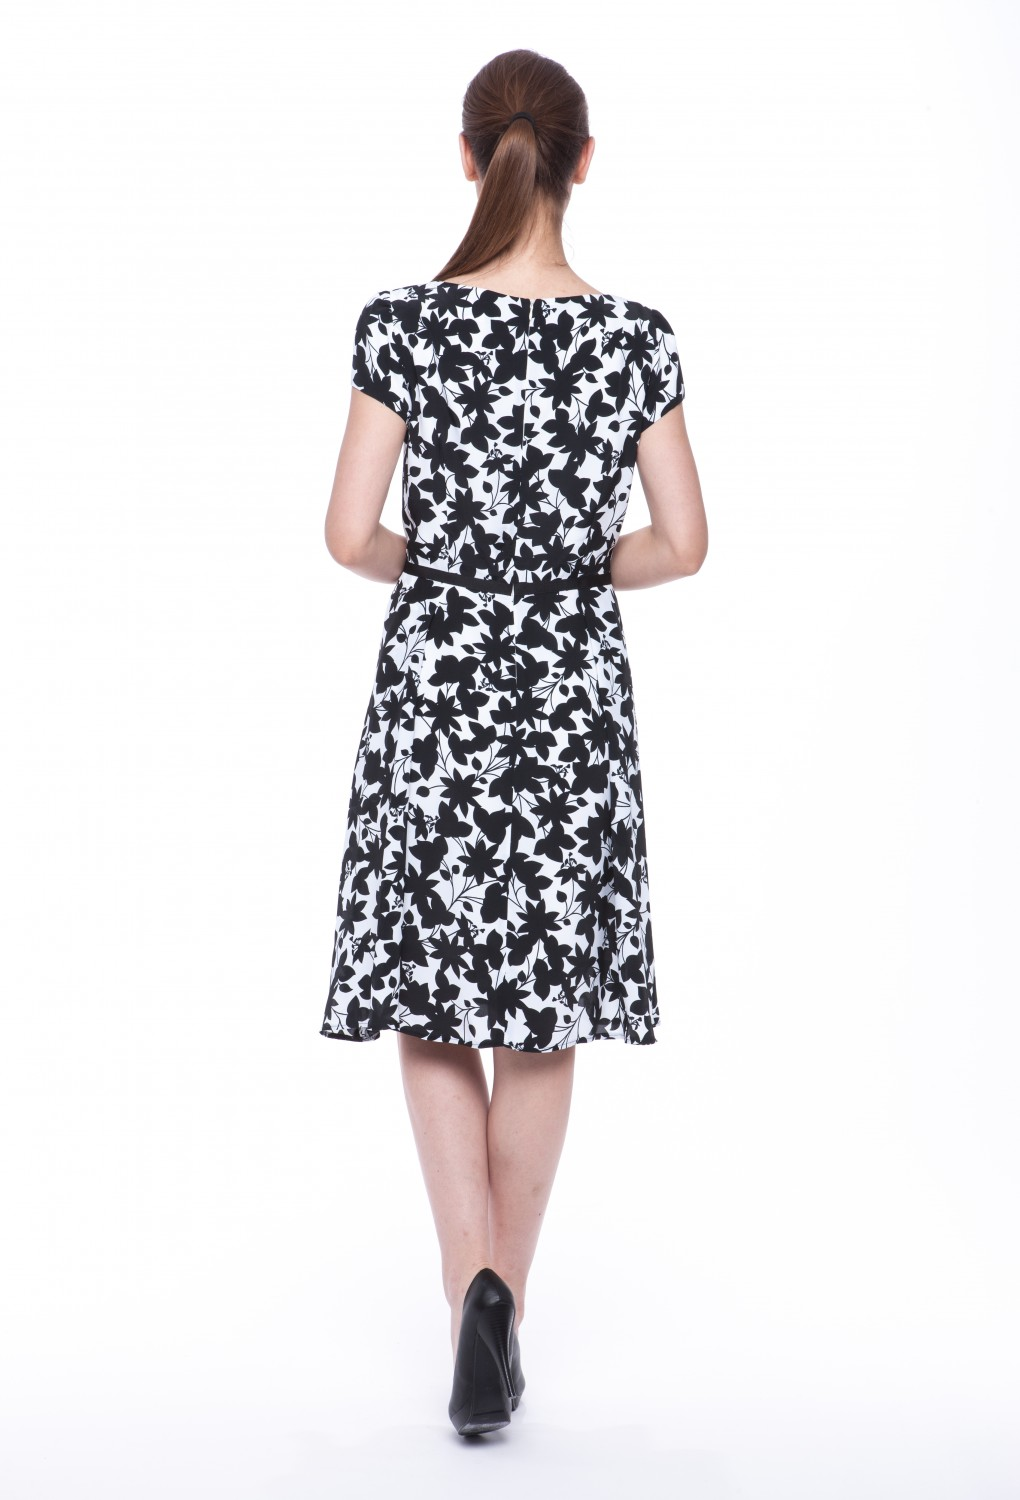 "Summer dress ""Hyacinth"" with sleeves 